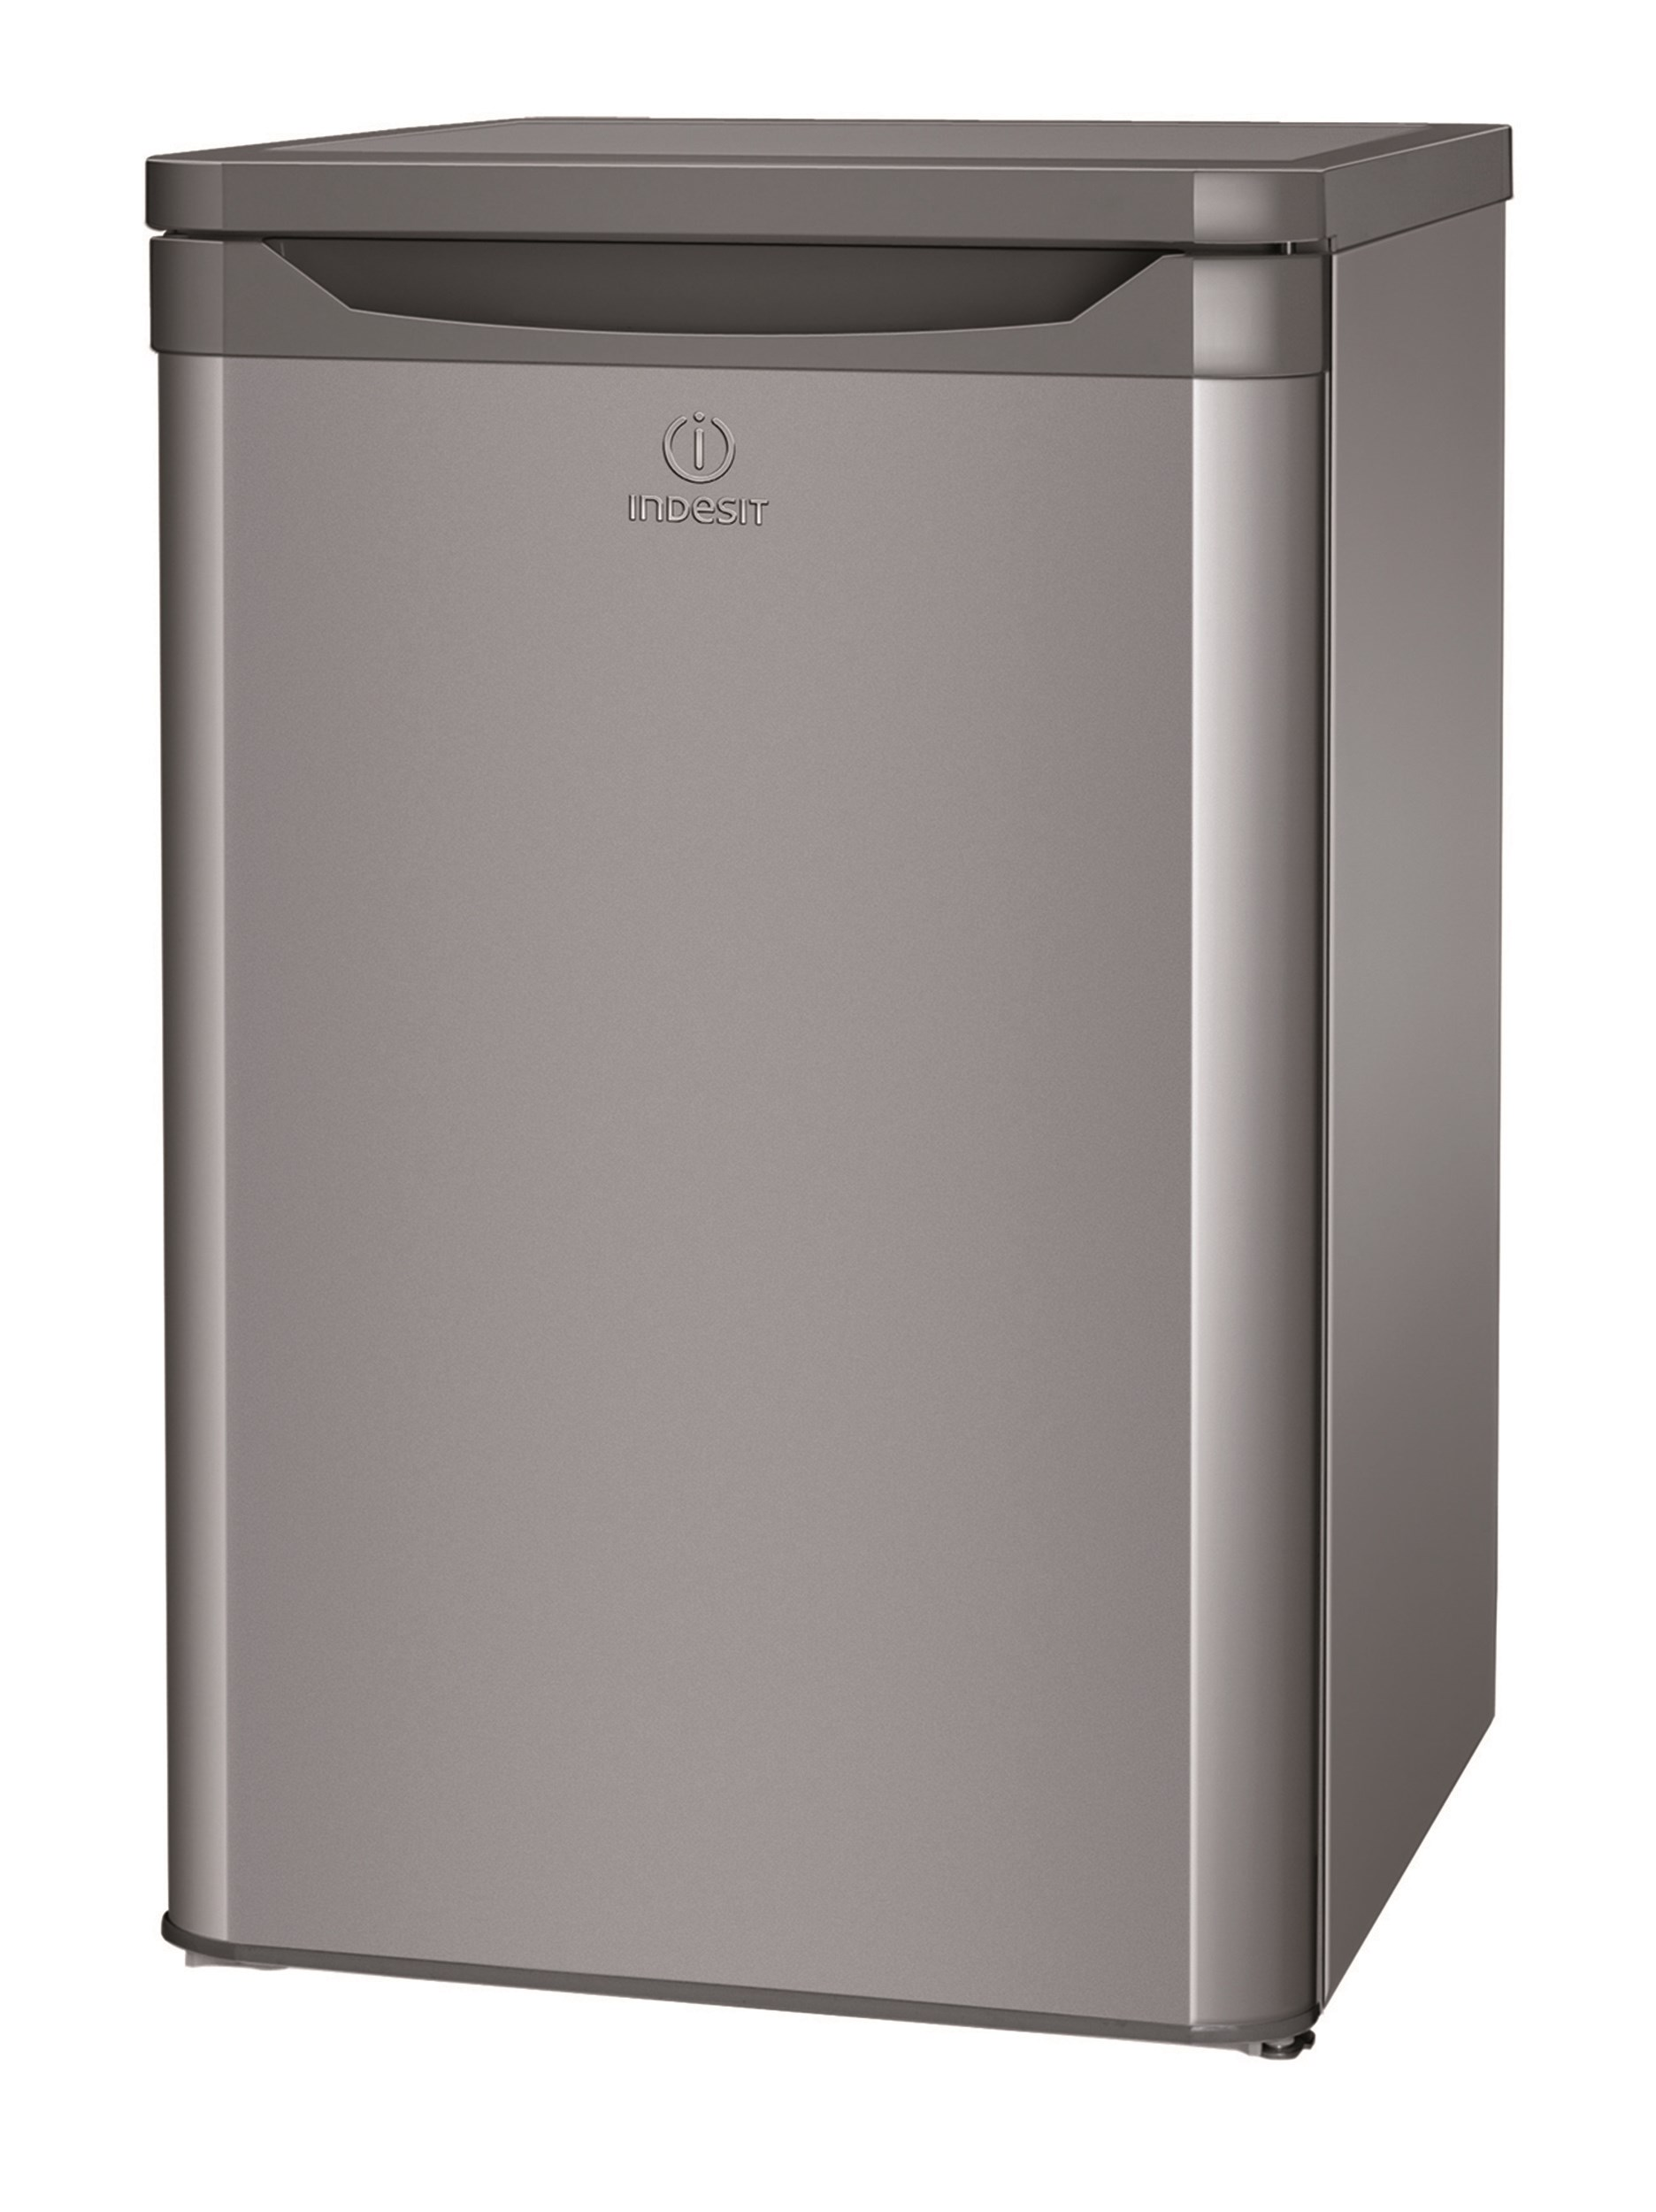 Indesit  Silver Compact Fridge - TLAA10S